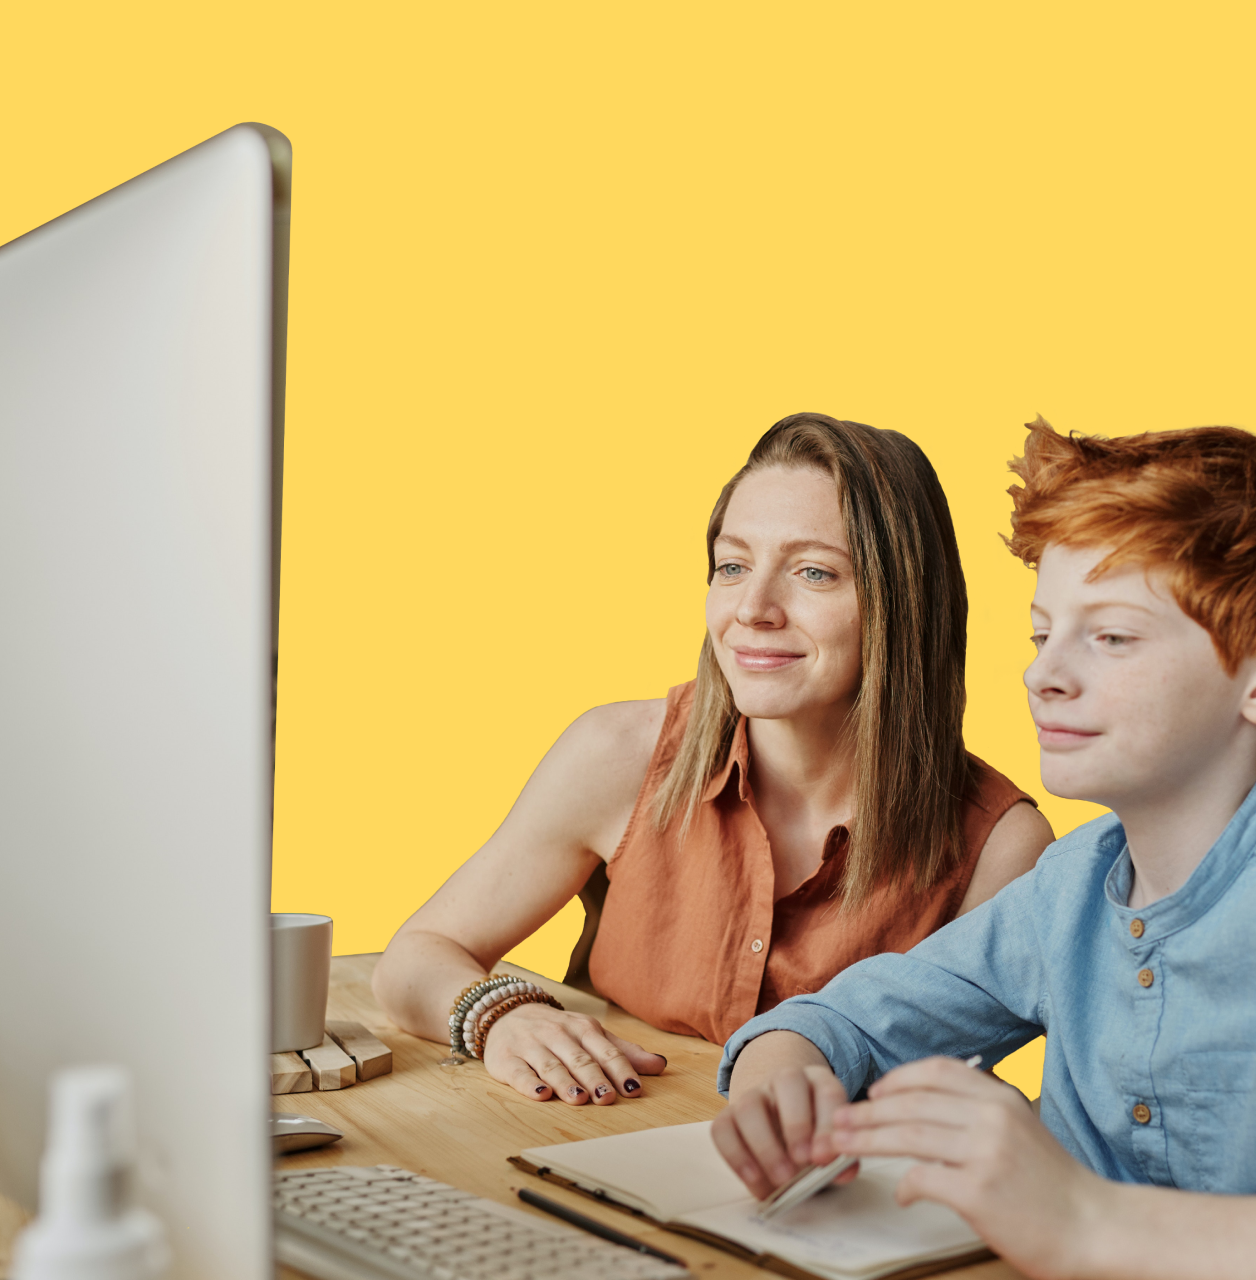 Boy and woman using laptop